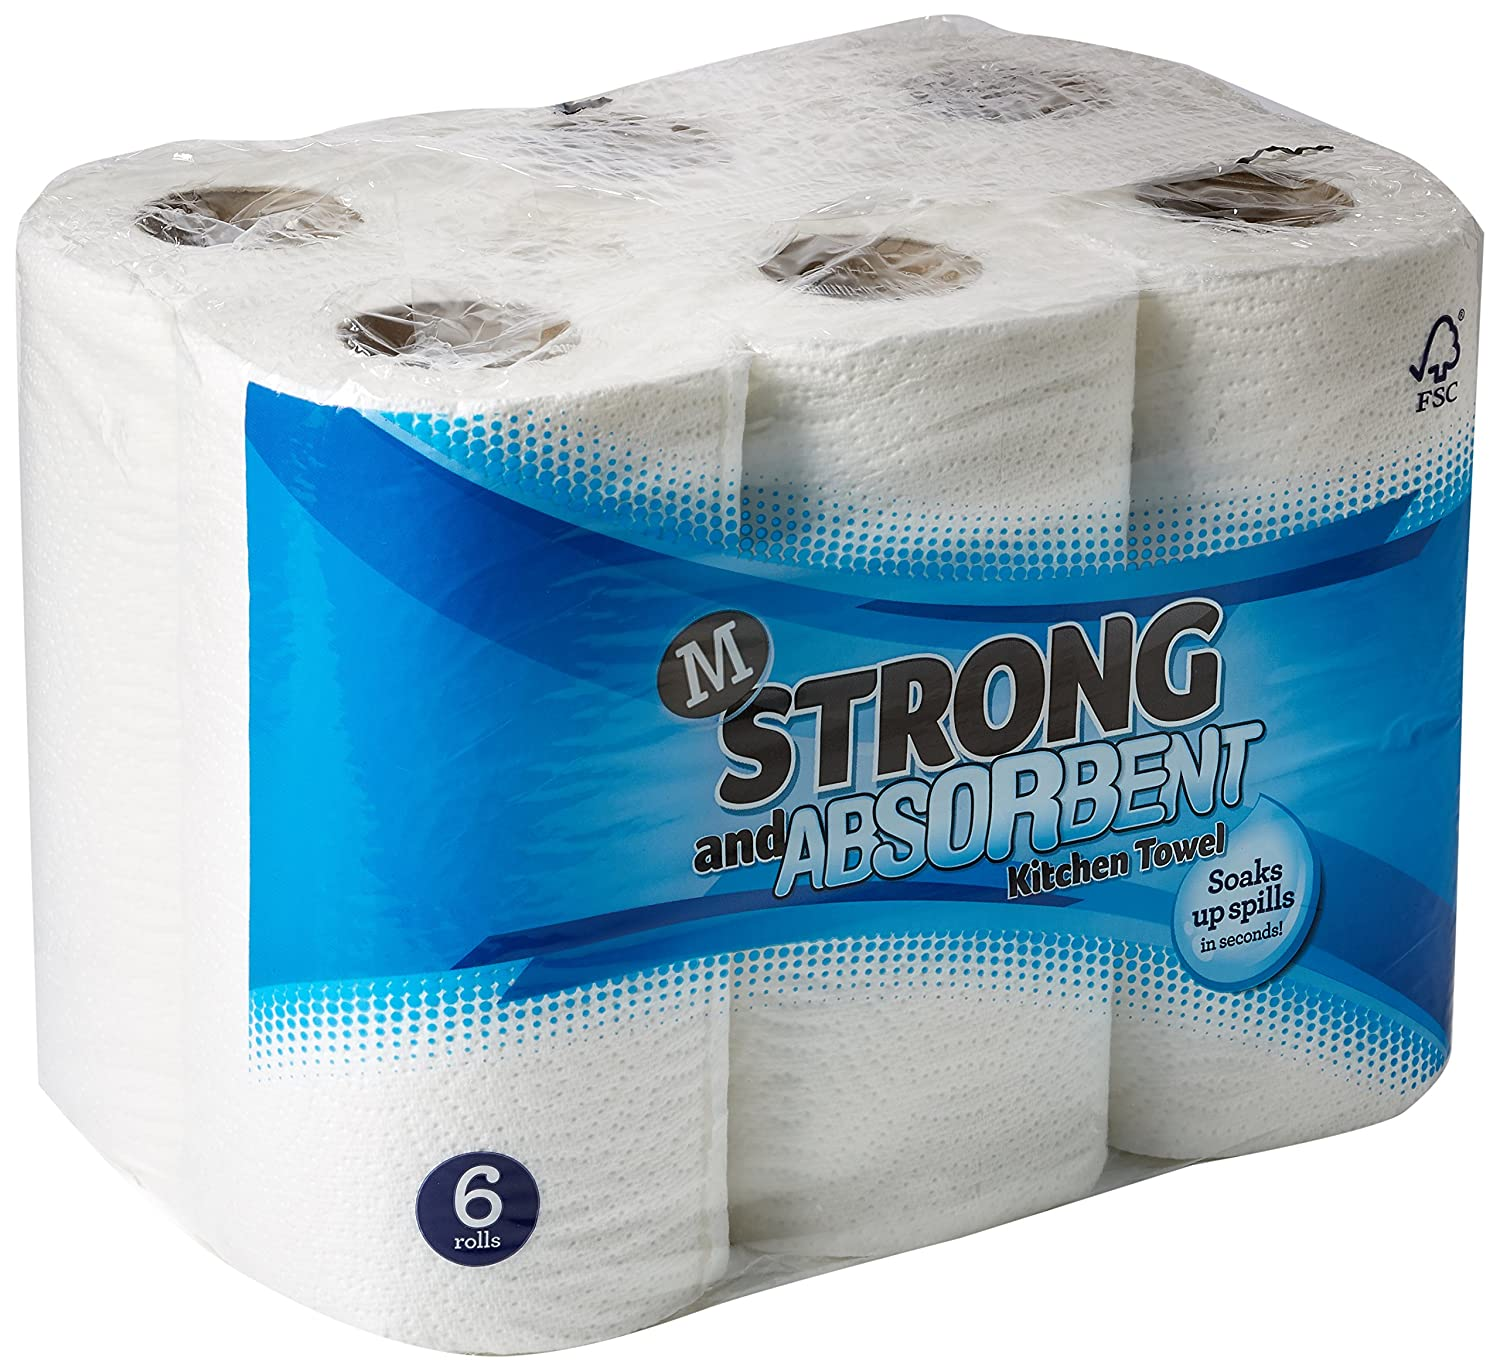 Morrisons Strong and Absorbent Kitchen Towel, 6 rolls: Amazon.co.uk ...